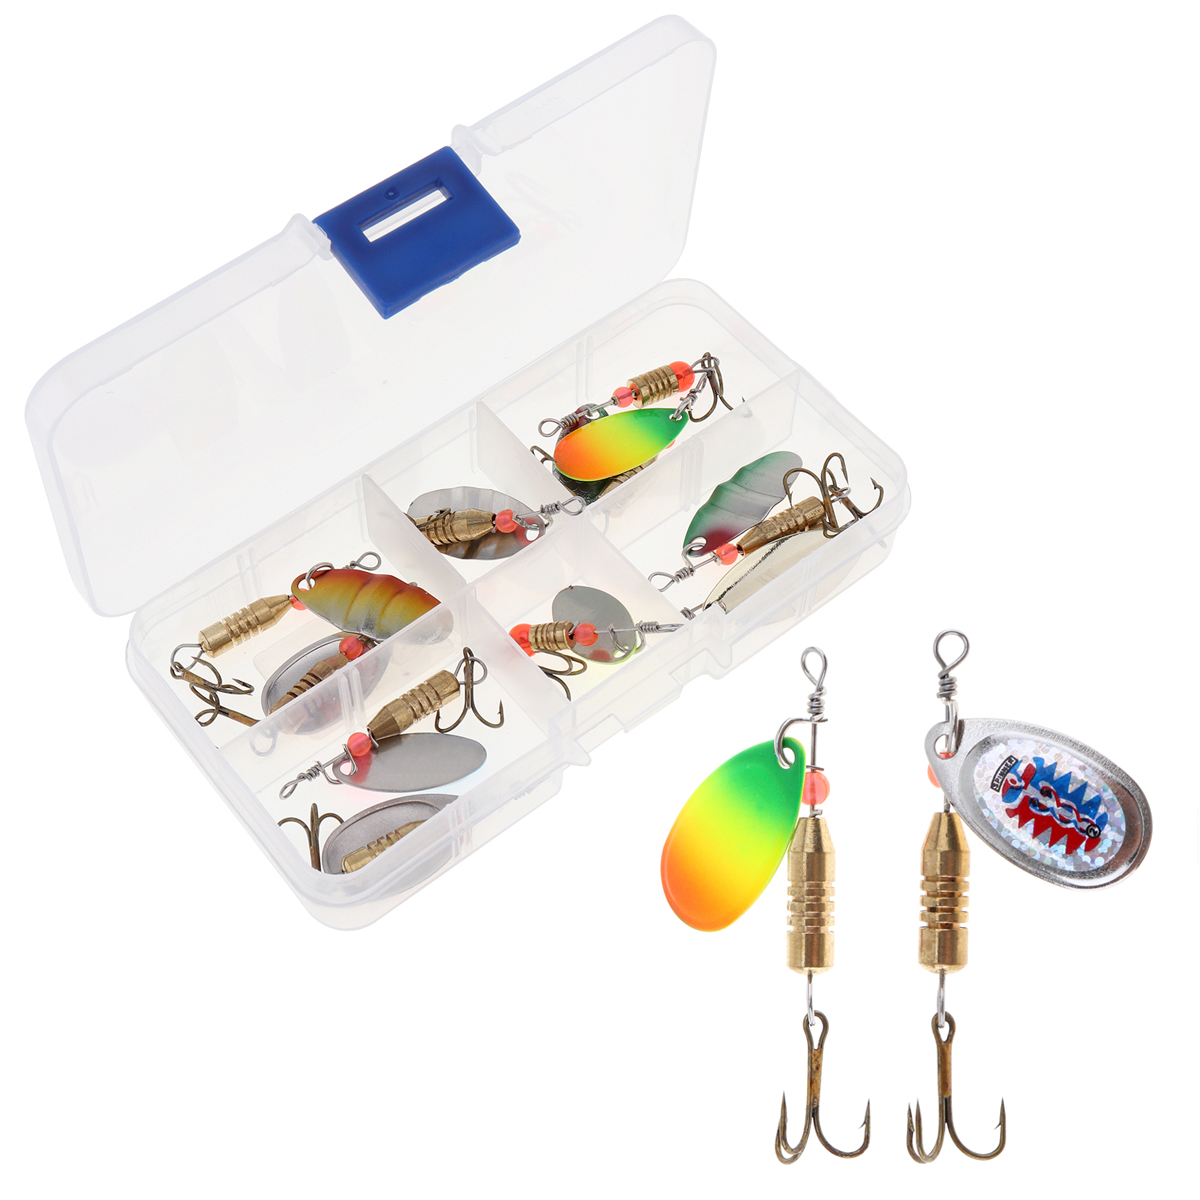 WEIHE NEW 11pcs/set Assorted Metal Fishing Lures Spinner Spoon Blades Bait with Treble Hooks and Plastic Box 4pcs set of fishing lures saltwater hard bait metal spoon fishing lure spinner wobbler treble hooks for sea fishing accessory